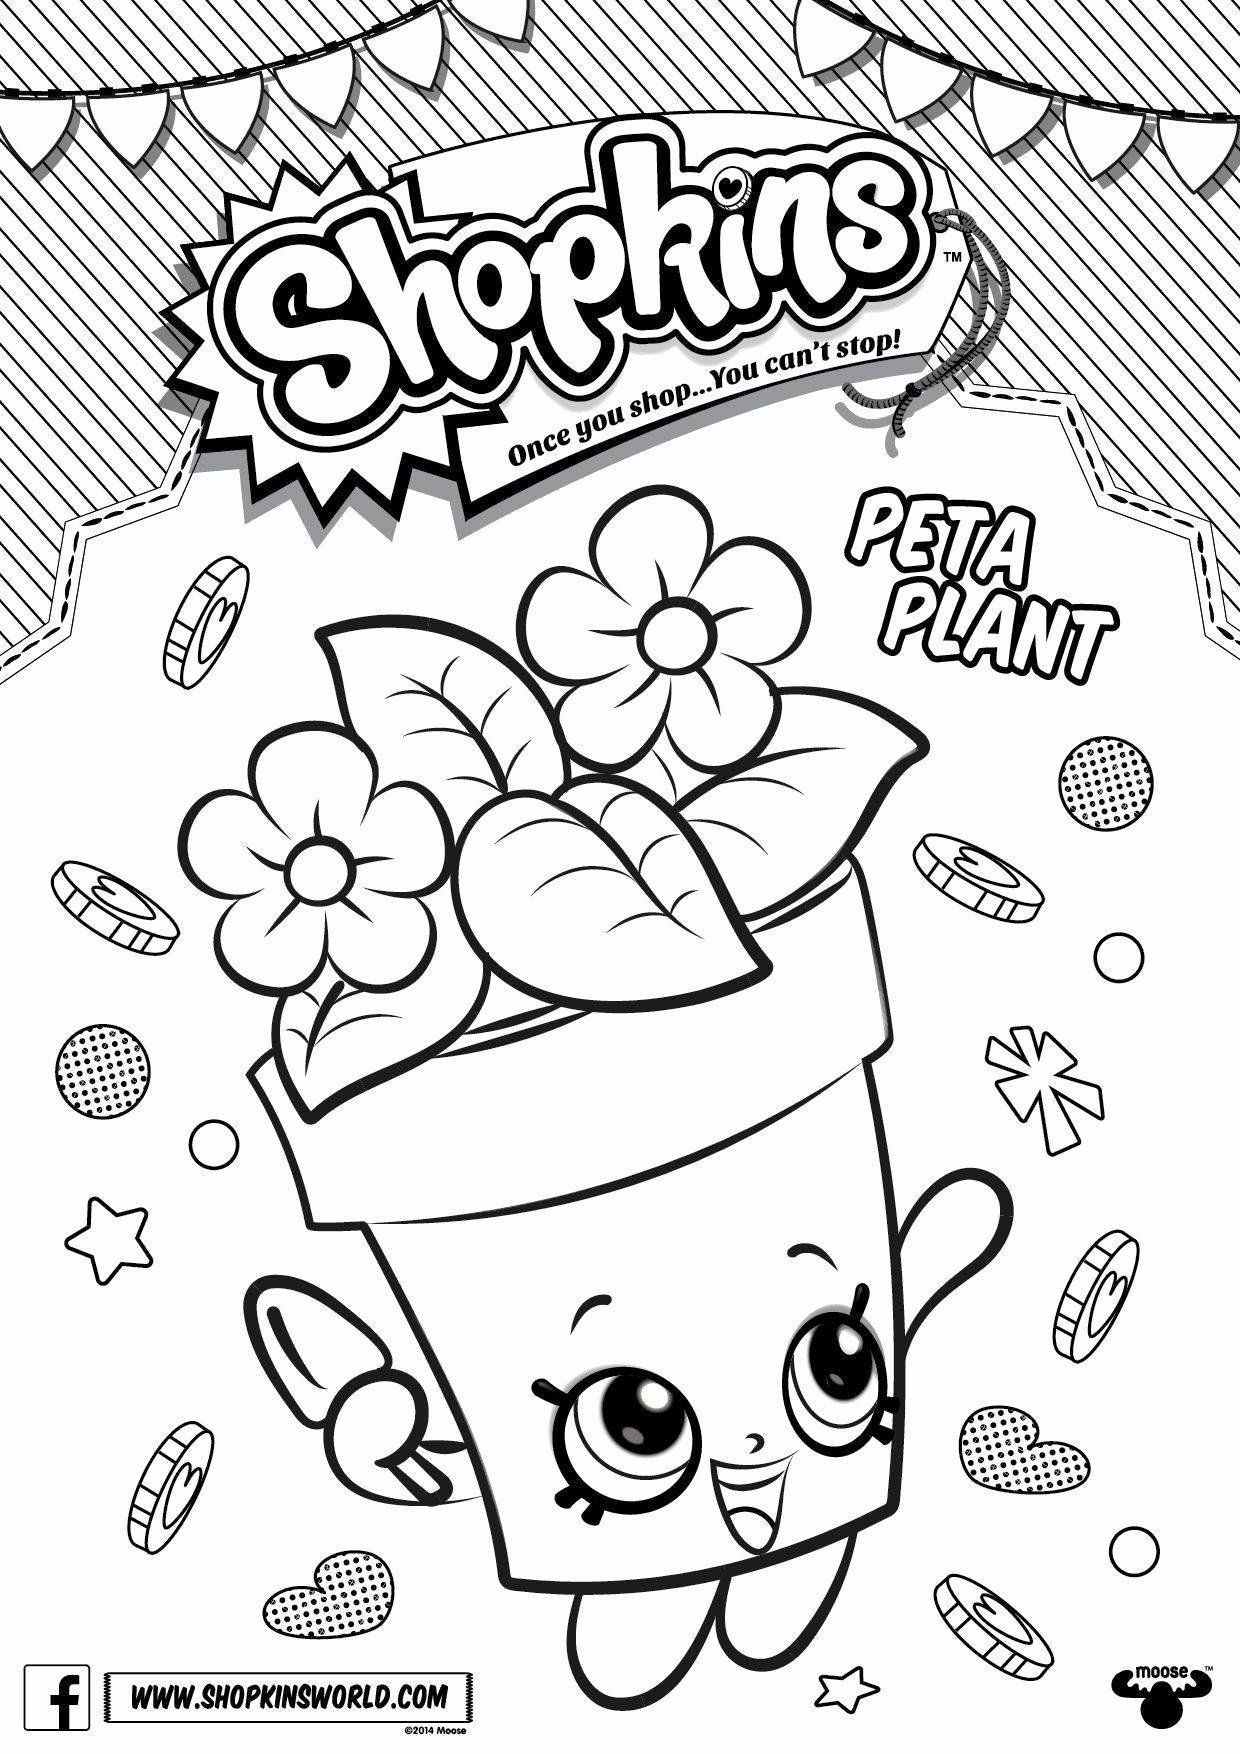 Coloring Pic Of Toys Inspirational Shopkins Coloring Games Coloring Pages Free Coloring Pages Shopkins Colouring Pages